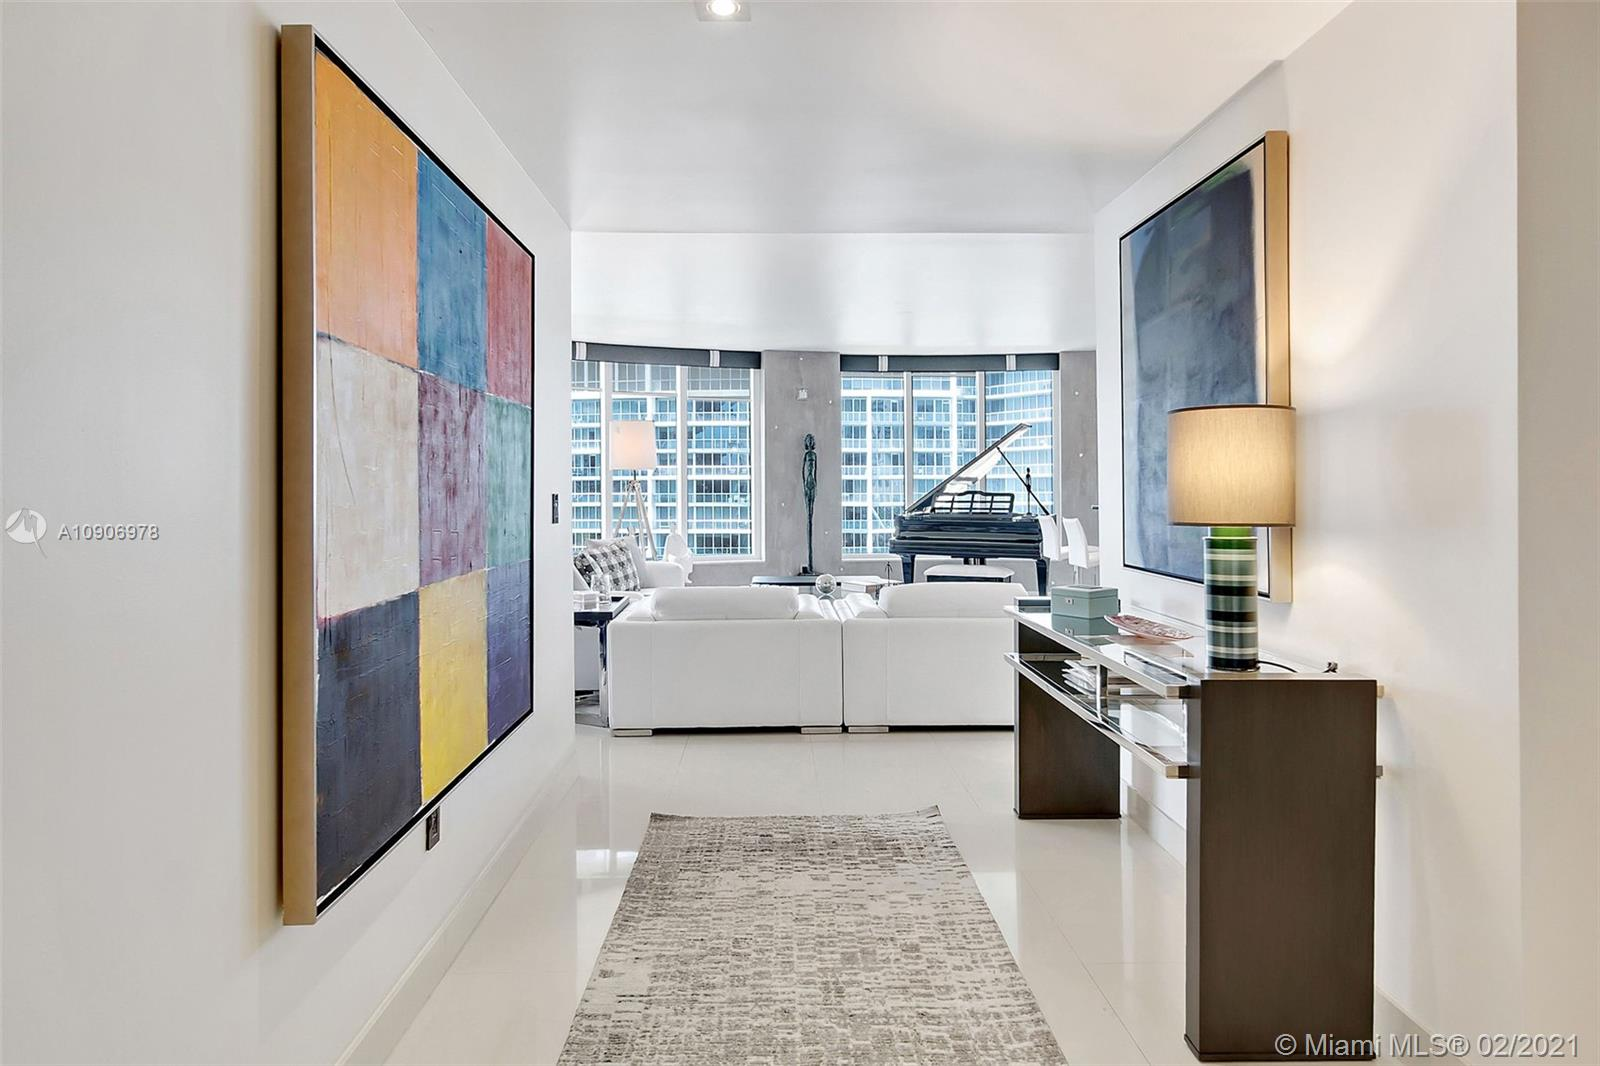 Carbonell #704 - 901 Brickell Key Blvd #704, Miami, FL 33131